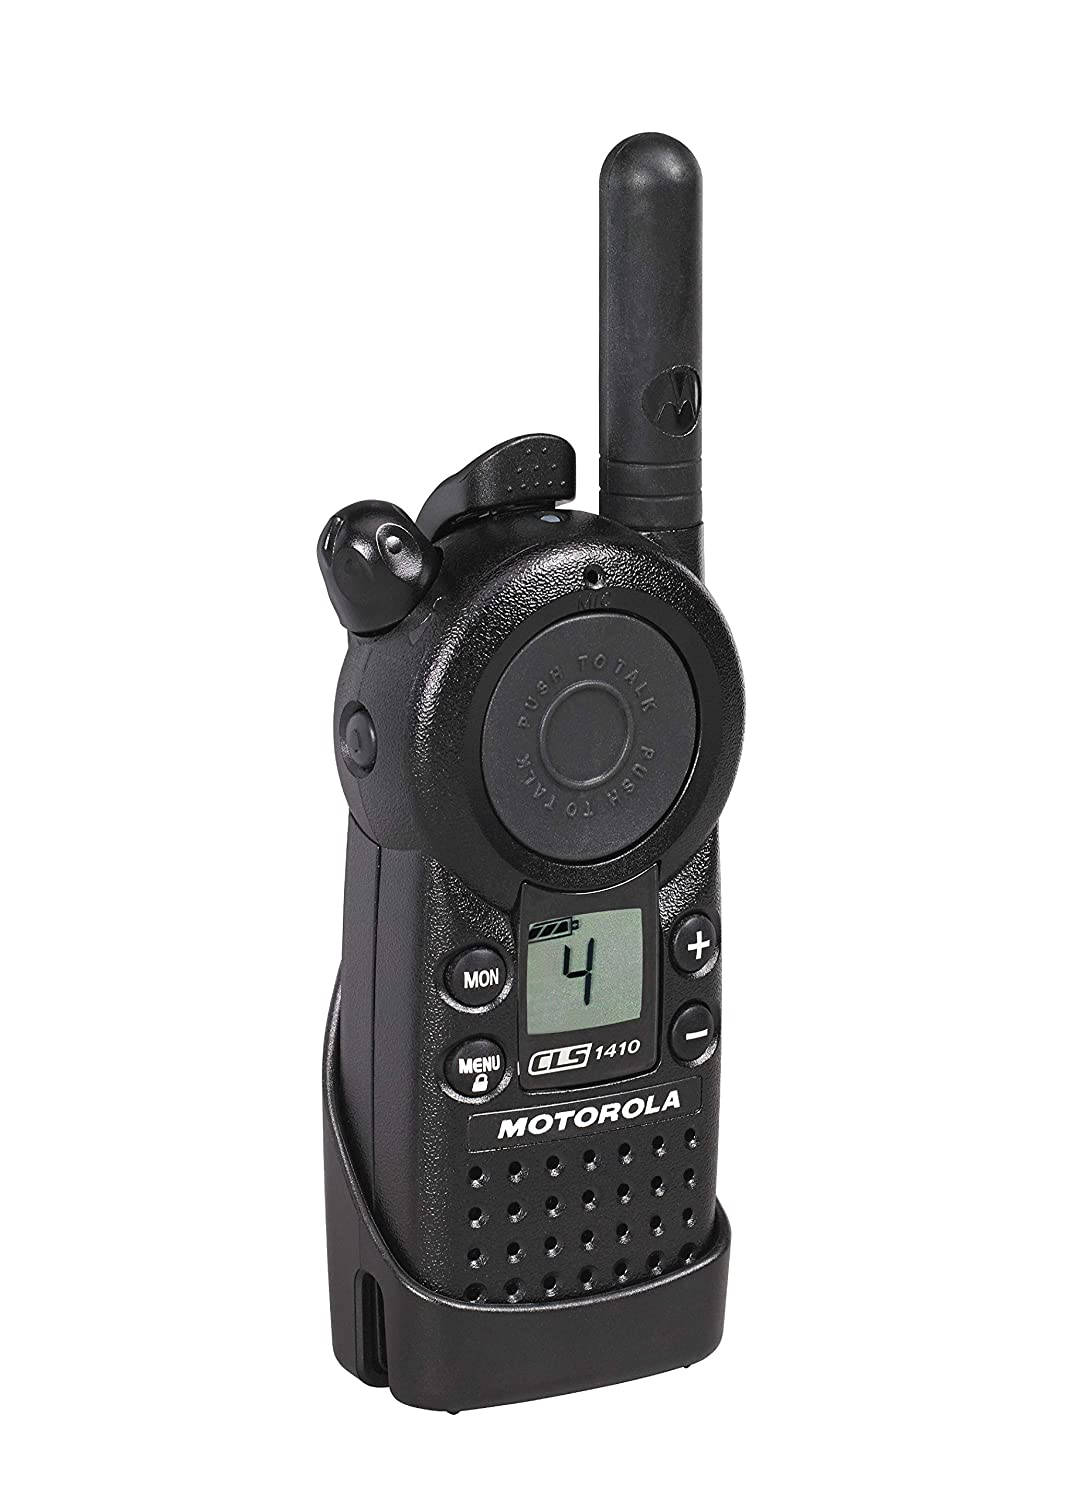 Two Count Motorola Professional CLS1410 5-Mile 4-Channel UHF Two-Way Radio